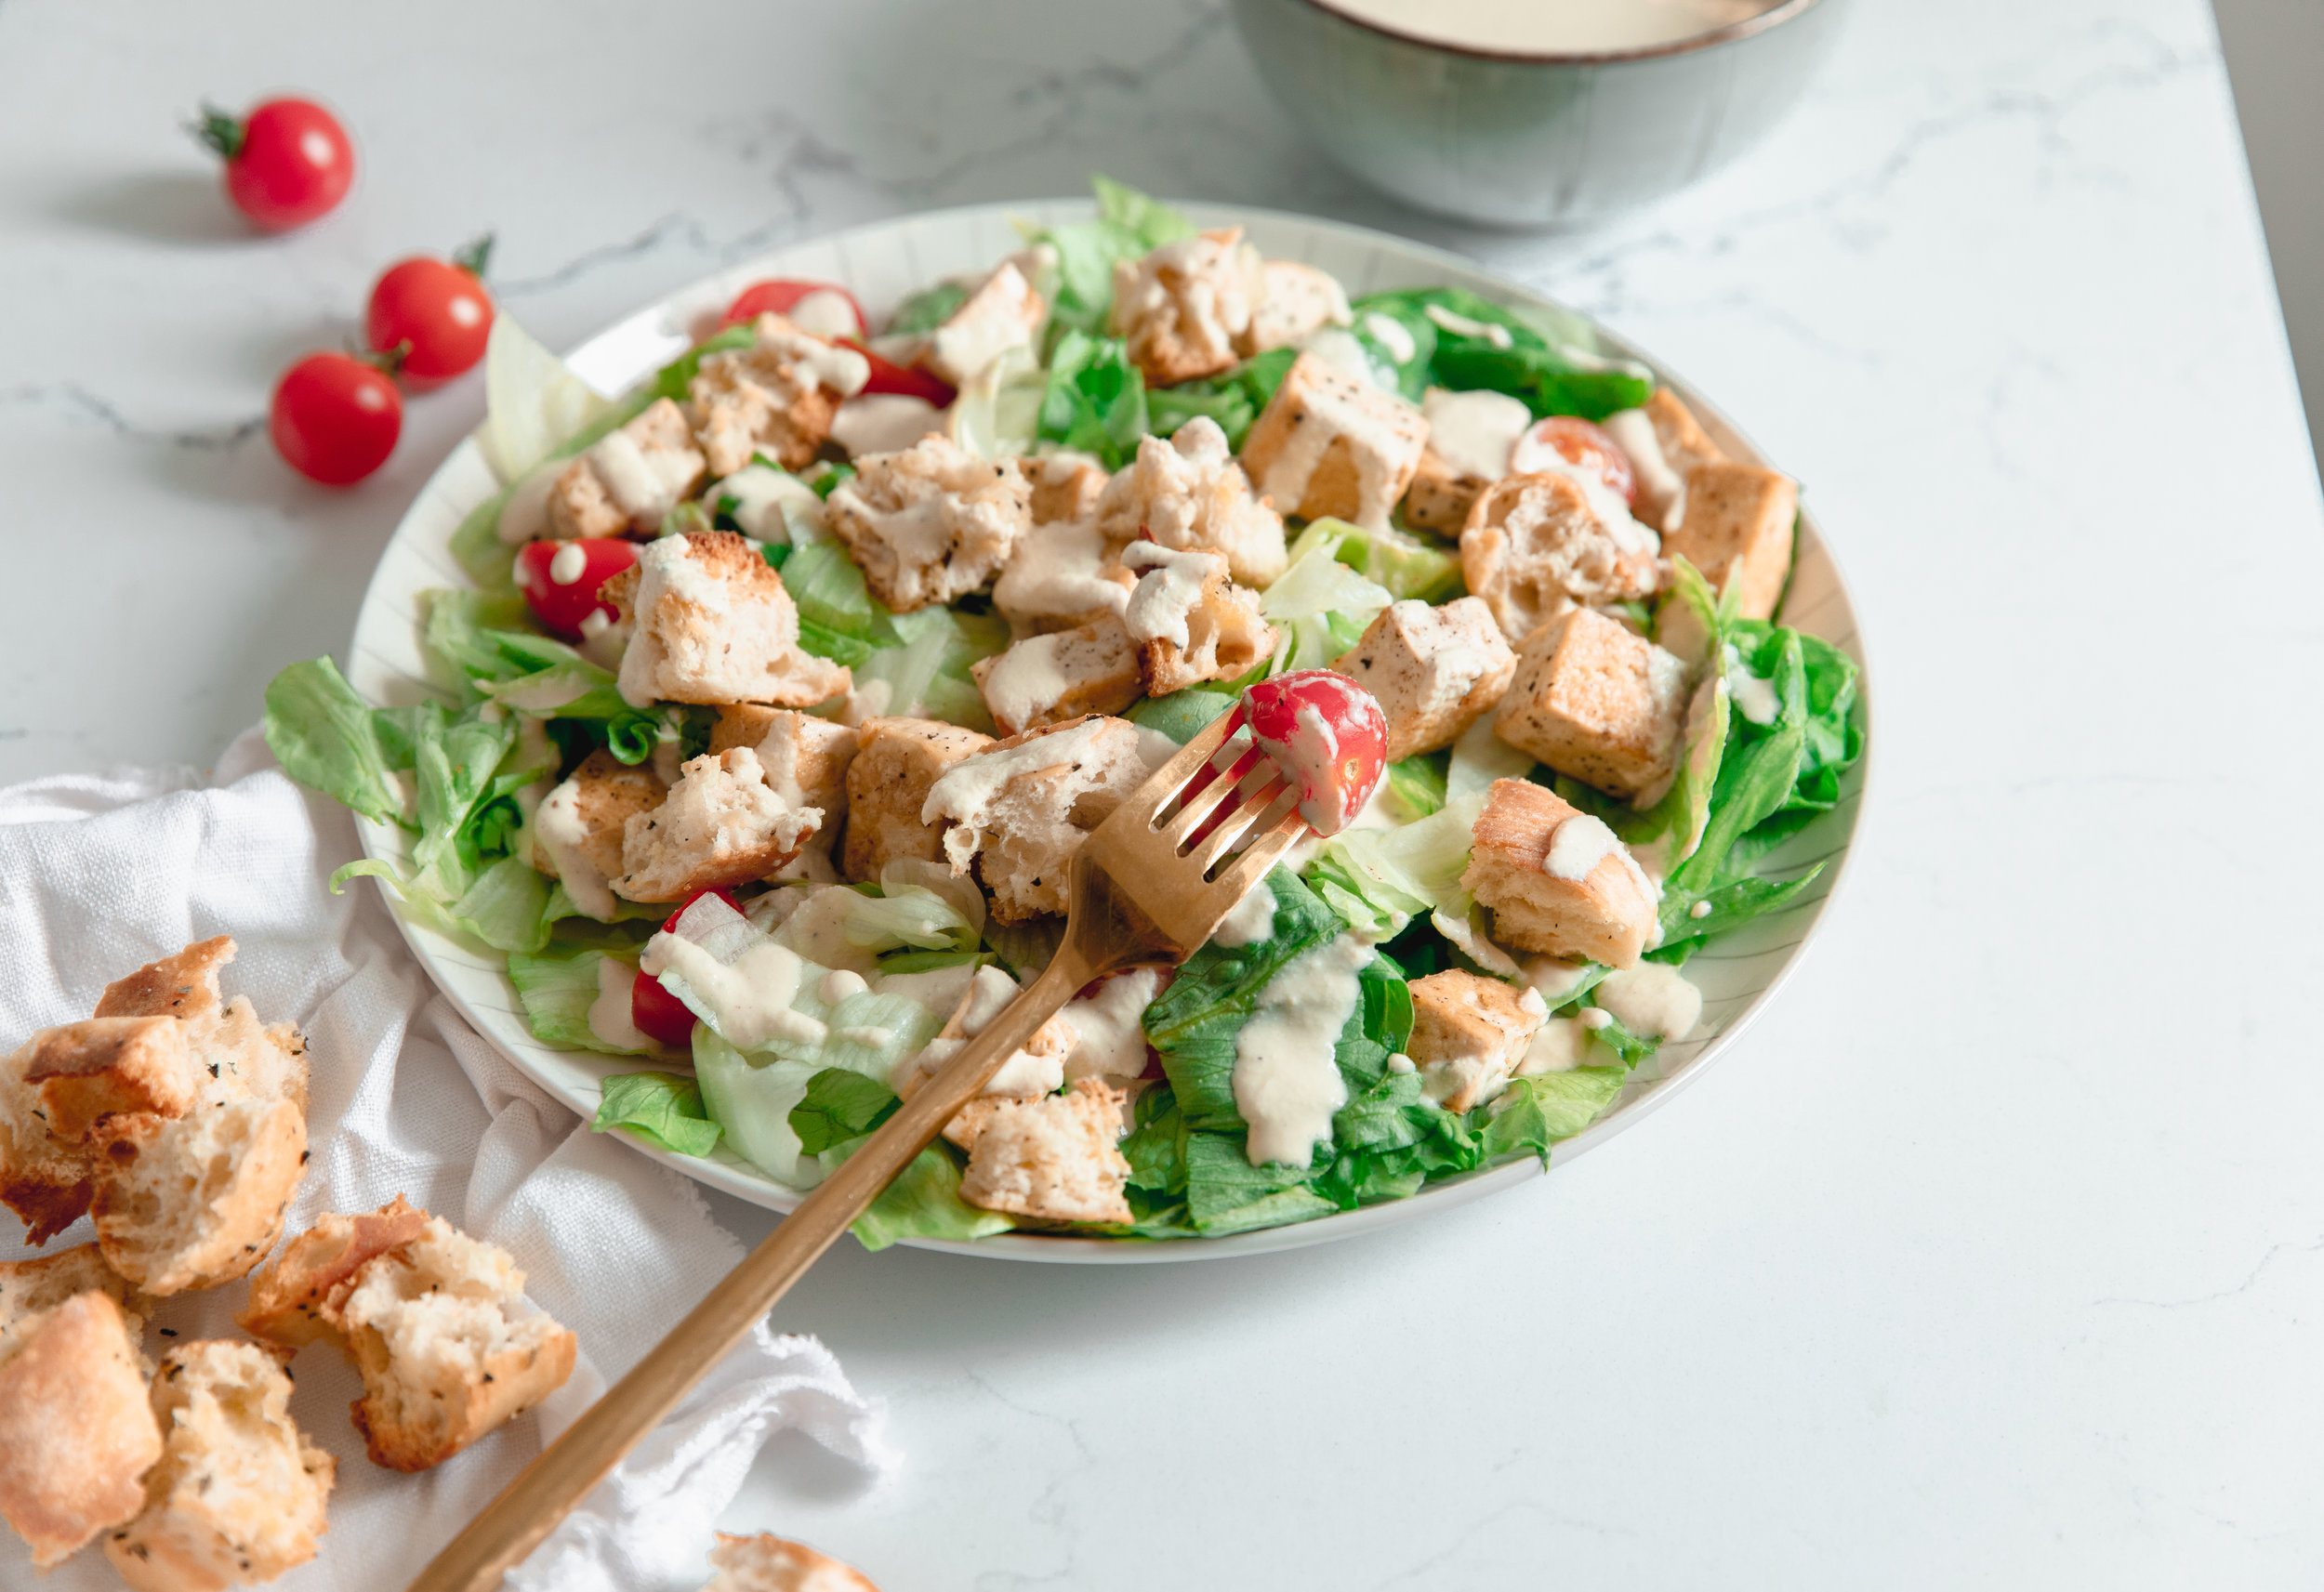 Crispy leaves, crunchy croutons, and a creamy dressing. - prep time Overnight/1 hour total time 20 minutes serves 2-3